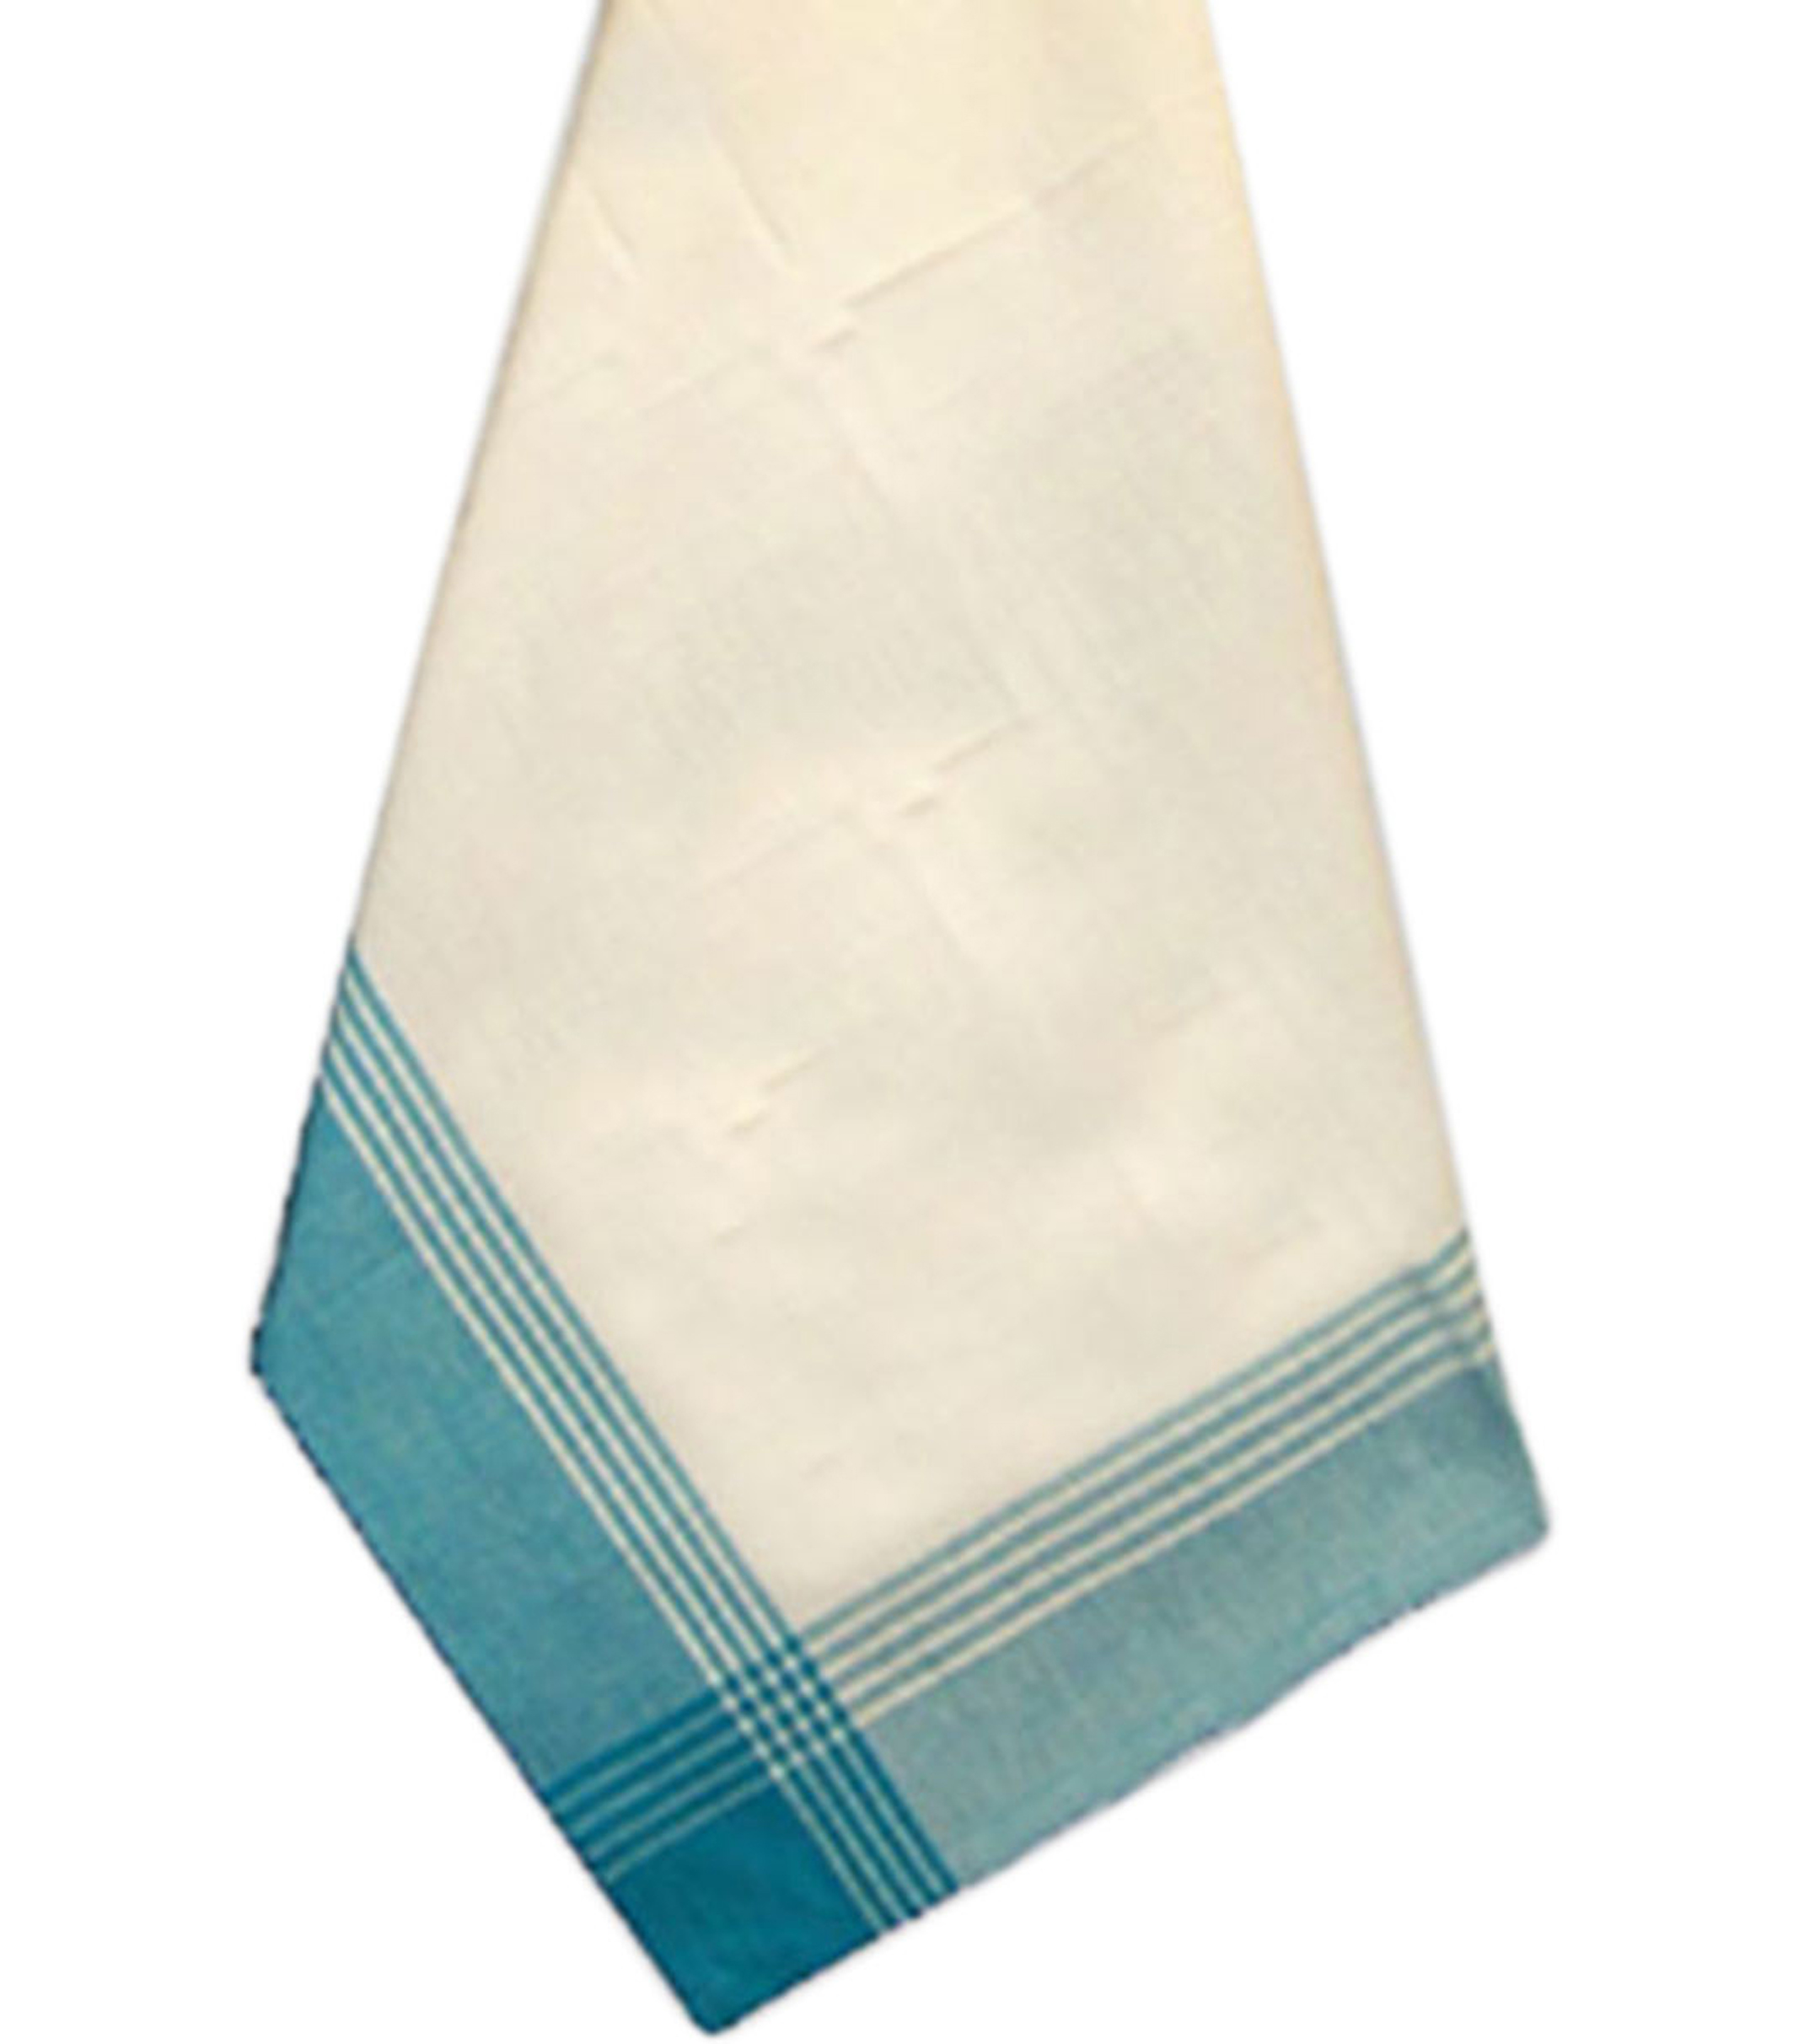 Dunroven House McLeod Tea Dyed Towel Stripes White & Turquoise